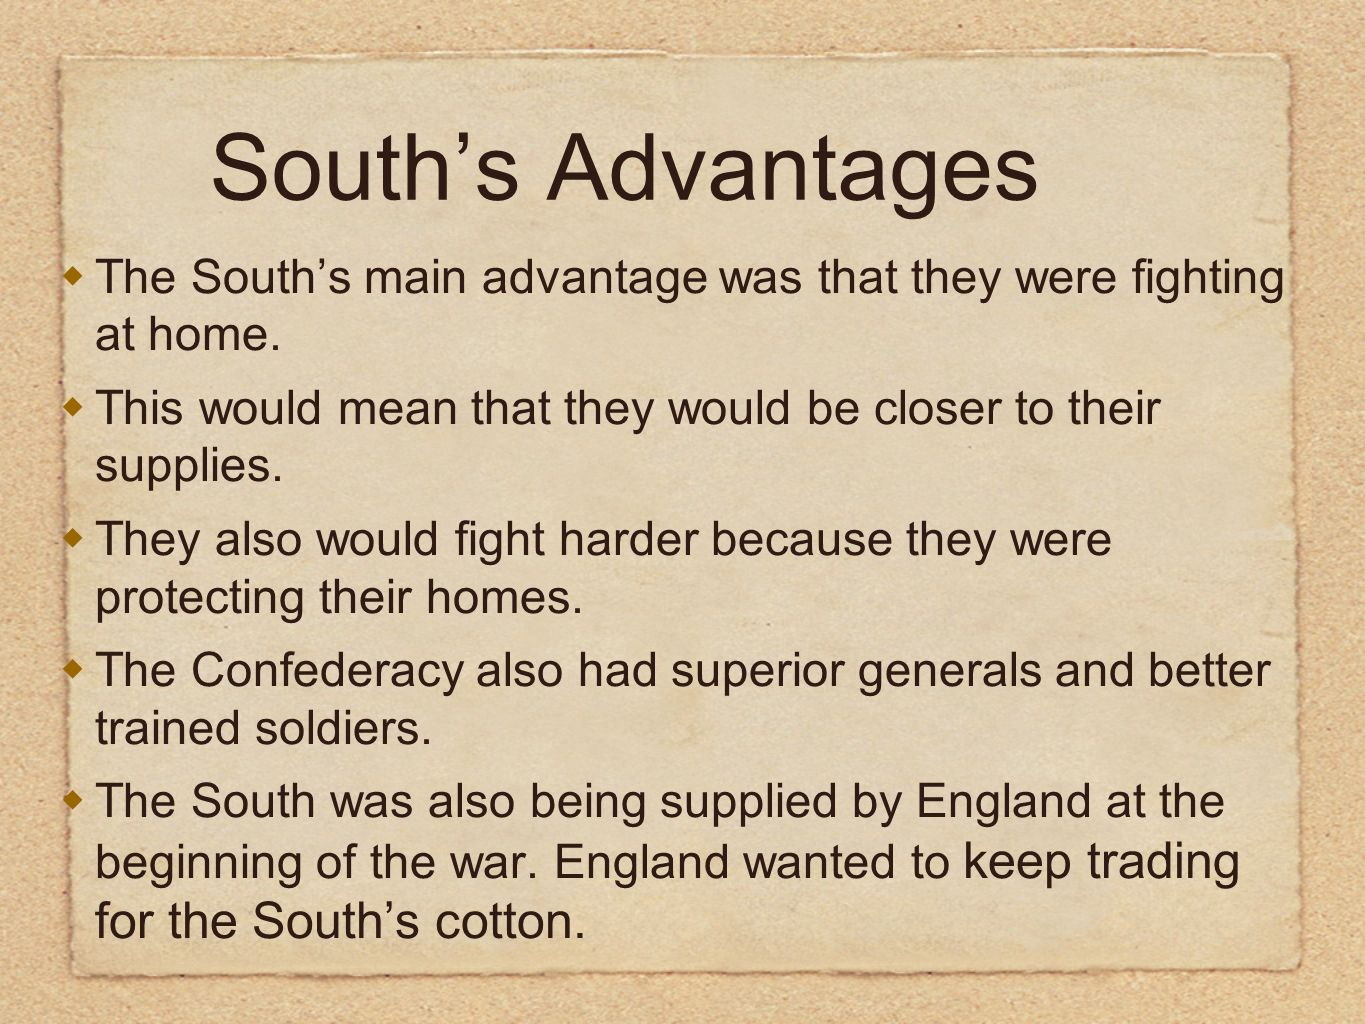 South's Advantages The South's main advantage was that they were fighting at home. This would mean that they would be closer to their supplies.